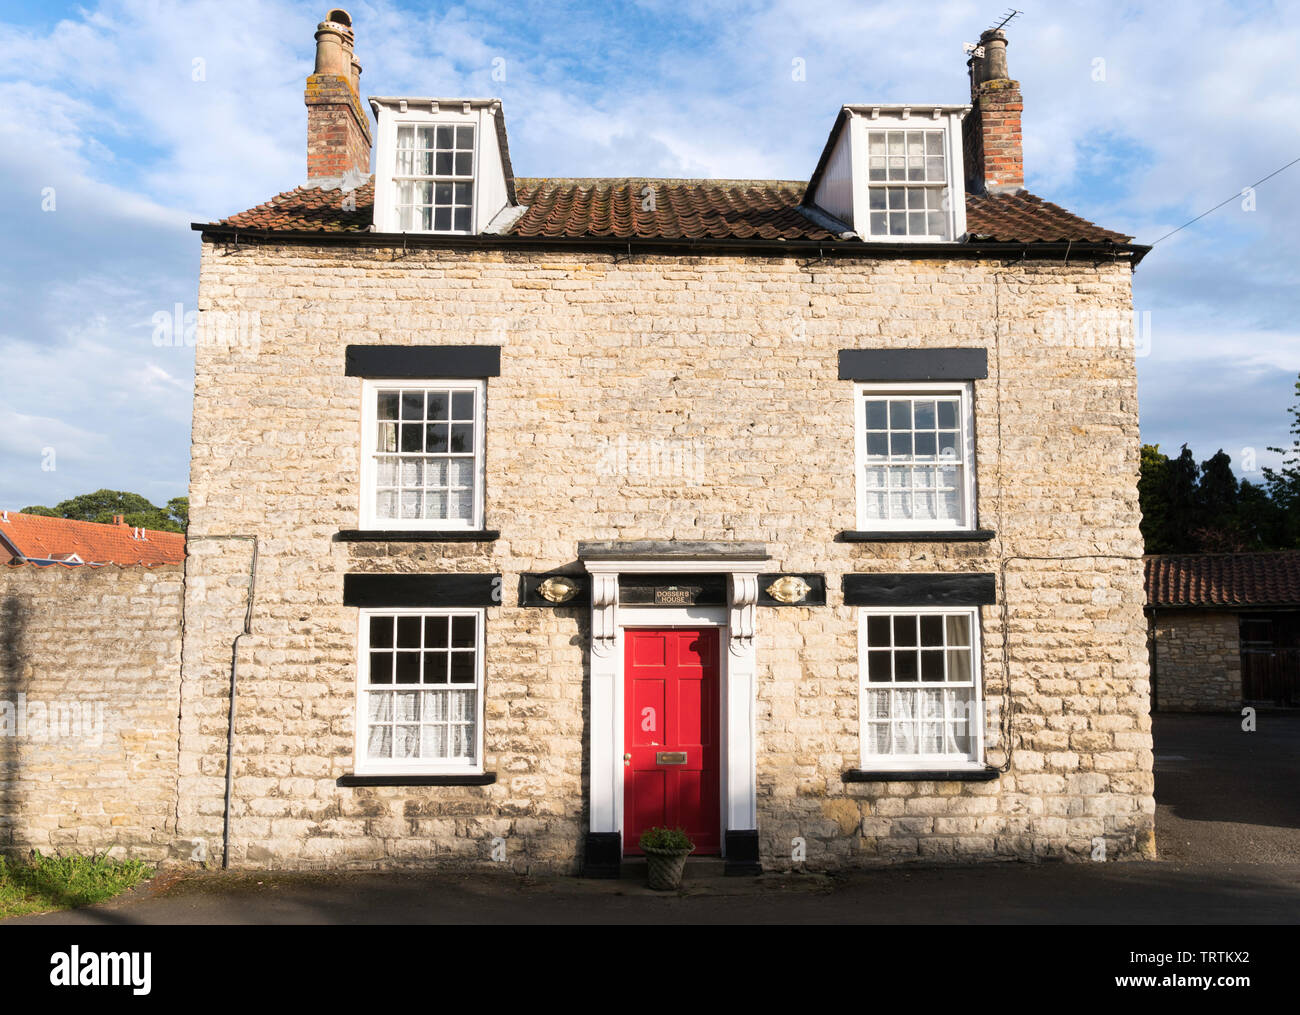 A grade II listed detached stone house, Dossers House, on The Green  in Slingsby, North Yorkshire, England, UK - Stock Image